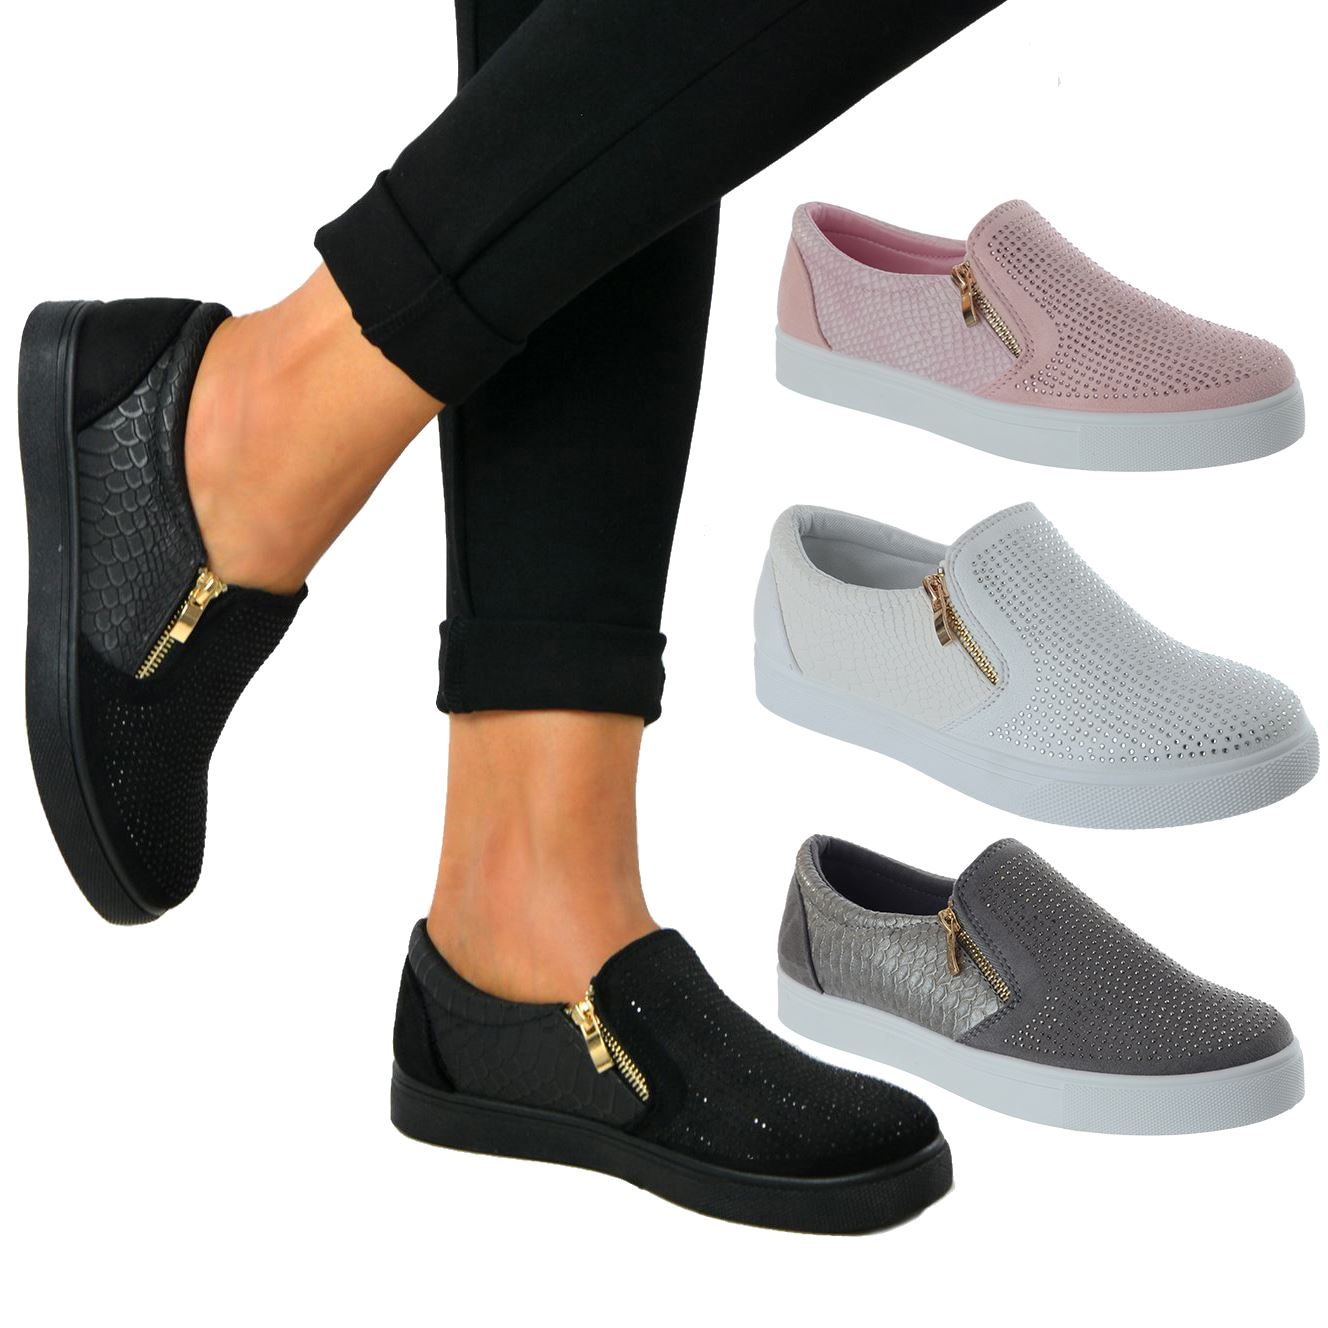 New Ladies Low Ankle Diamante Pumps Women Glitter Shoes Plimsols Trainers Boots